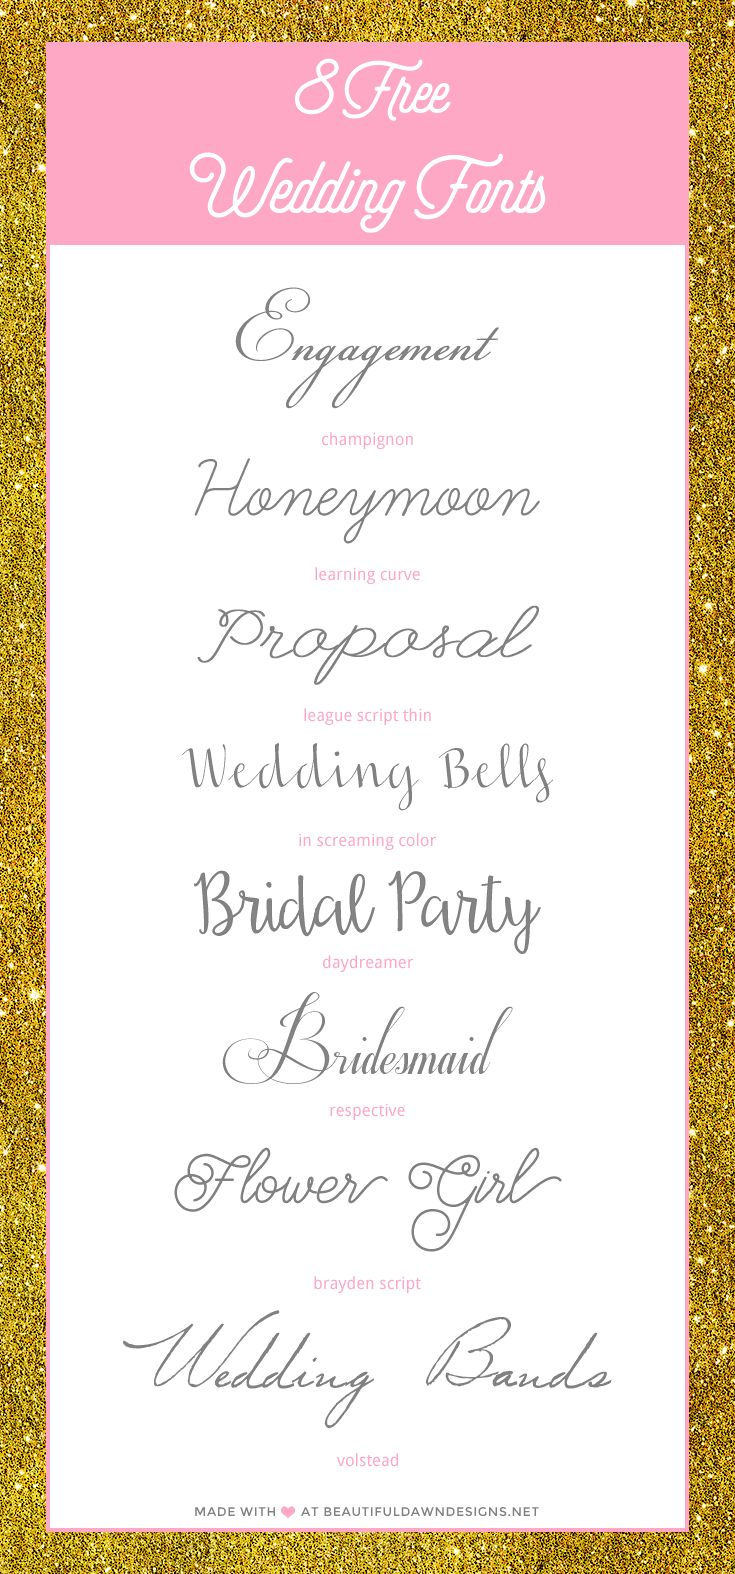 With wedding season approaching, I know a lot of soon to be brides are on the search for beautiful fonts to use for their invitations and announcements. I'm sharing 8 free fonts that are perfect for wedding invitations. Enjoy this roundup of free wedding fonts.